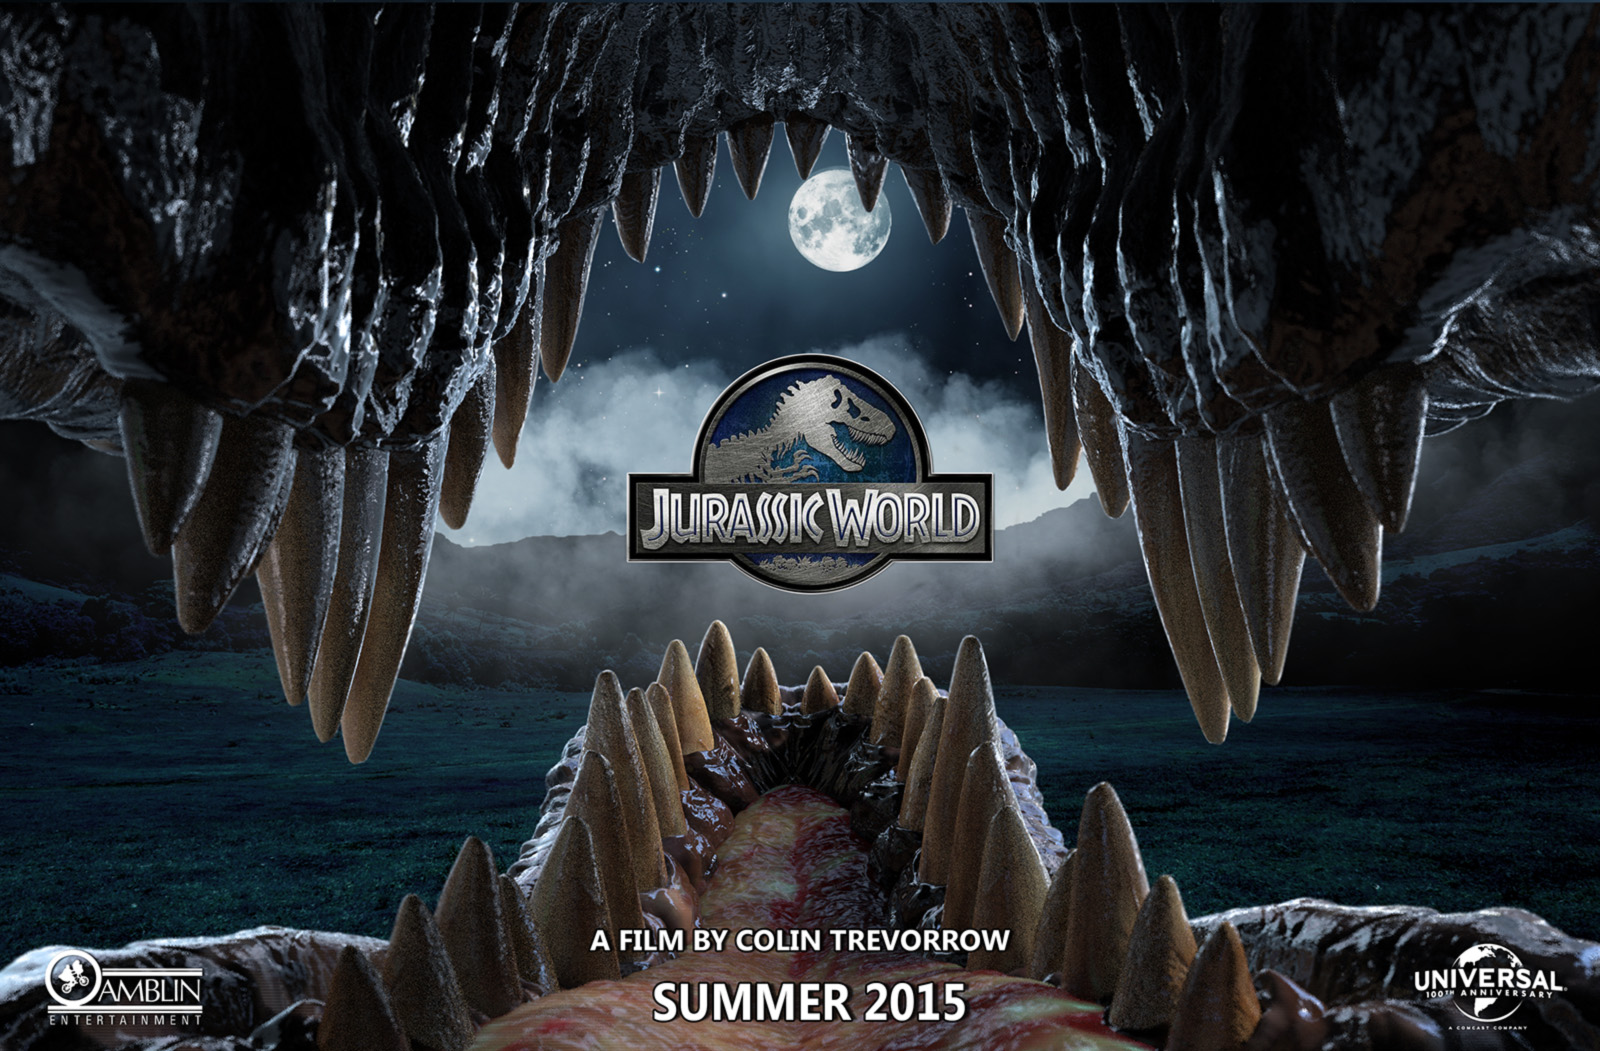 Jurassic World: ecco il primo trailer ufficiale in italiano [VIDEO]